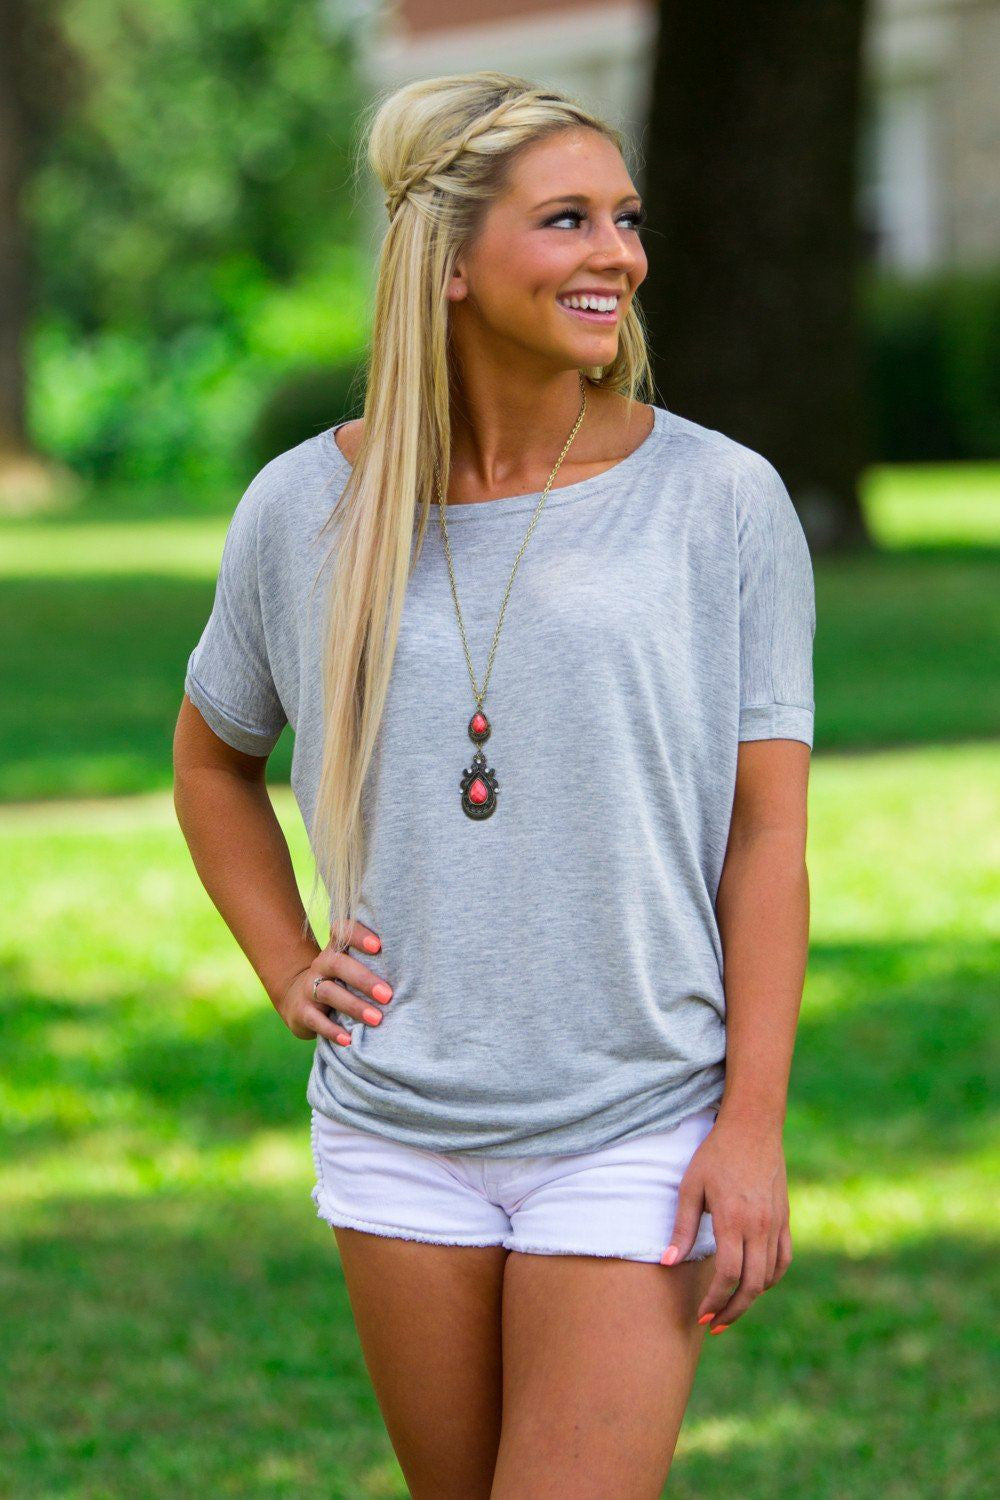 Short Sleeve Piko Top - Heather Grey - Piko Clothing - 1